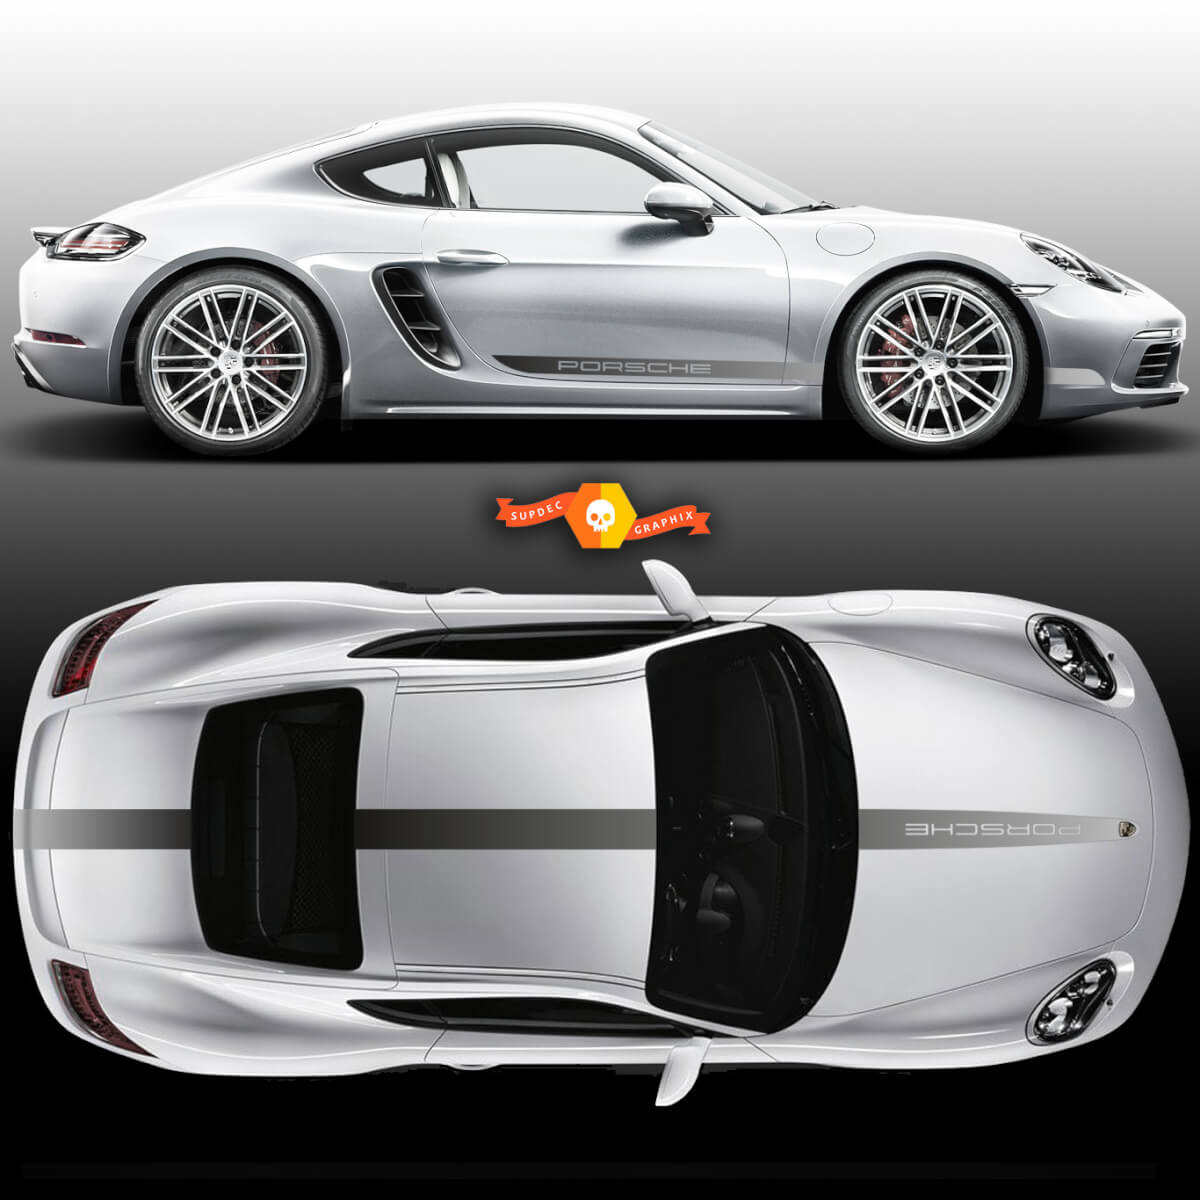 Gradient Color Porsche Carrera Cayman Boxster Faded Racing Stripes  Porsche For Carrera Or Any Porsche